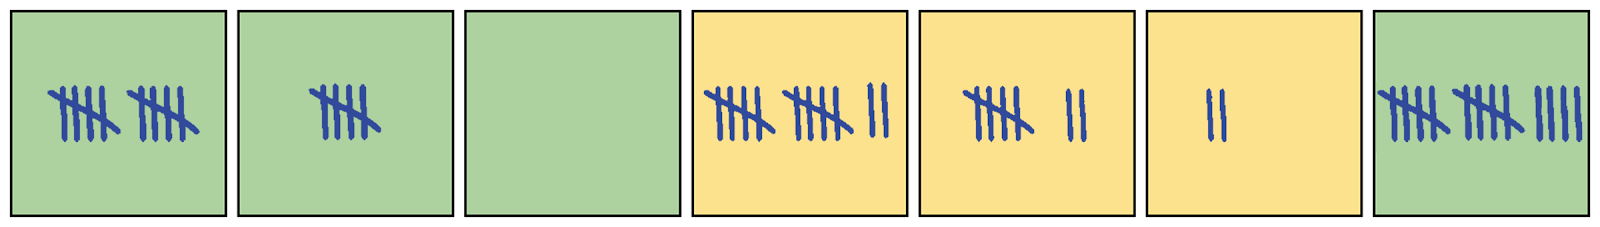 First, a green square with 2 groups of 5 tally marks. Next, a green square with 1 group of 5 tally marks. Then, an empty green square. Next, a yellow square with 2 groups of 5 tally marks + 2 singles. Next, a yellow square with 1 group of 5 tally marks + 2 singles. Then, a yellow square with 2 single tally marks. Last, a green square with 2 groups of 5 tally marks + 4 singles.